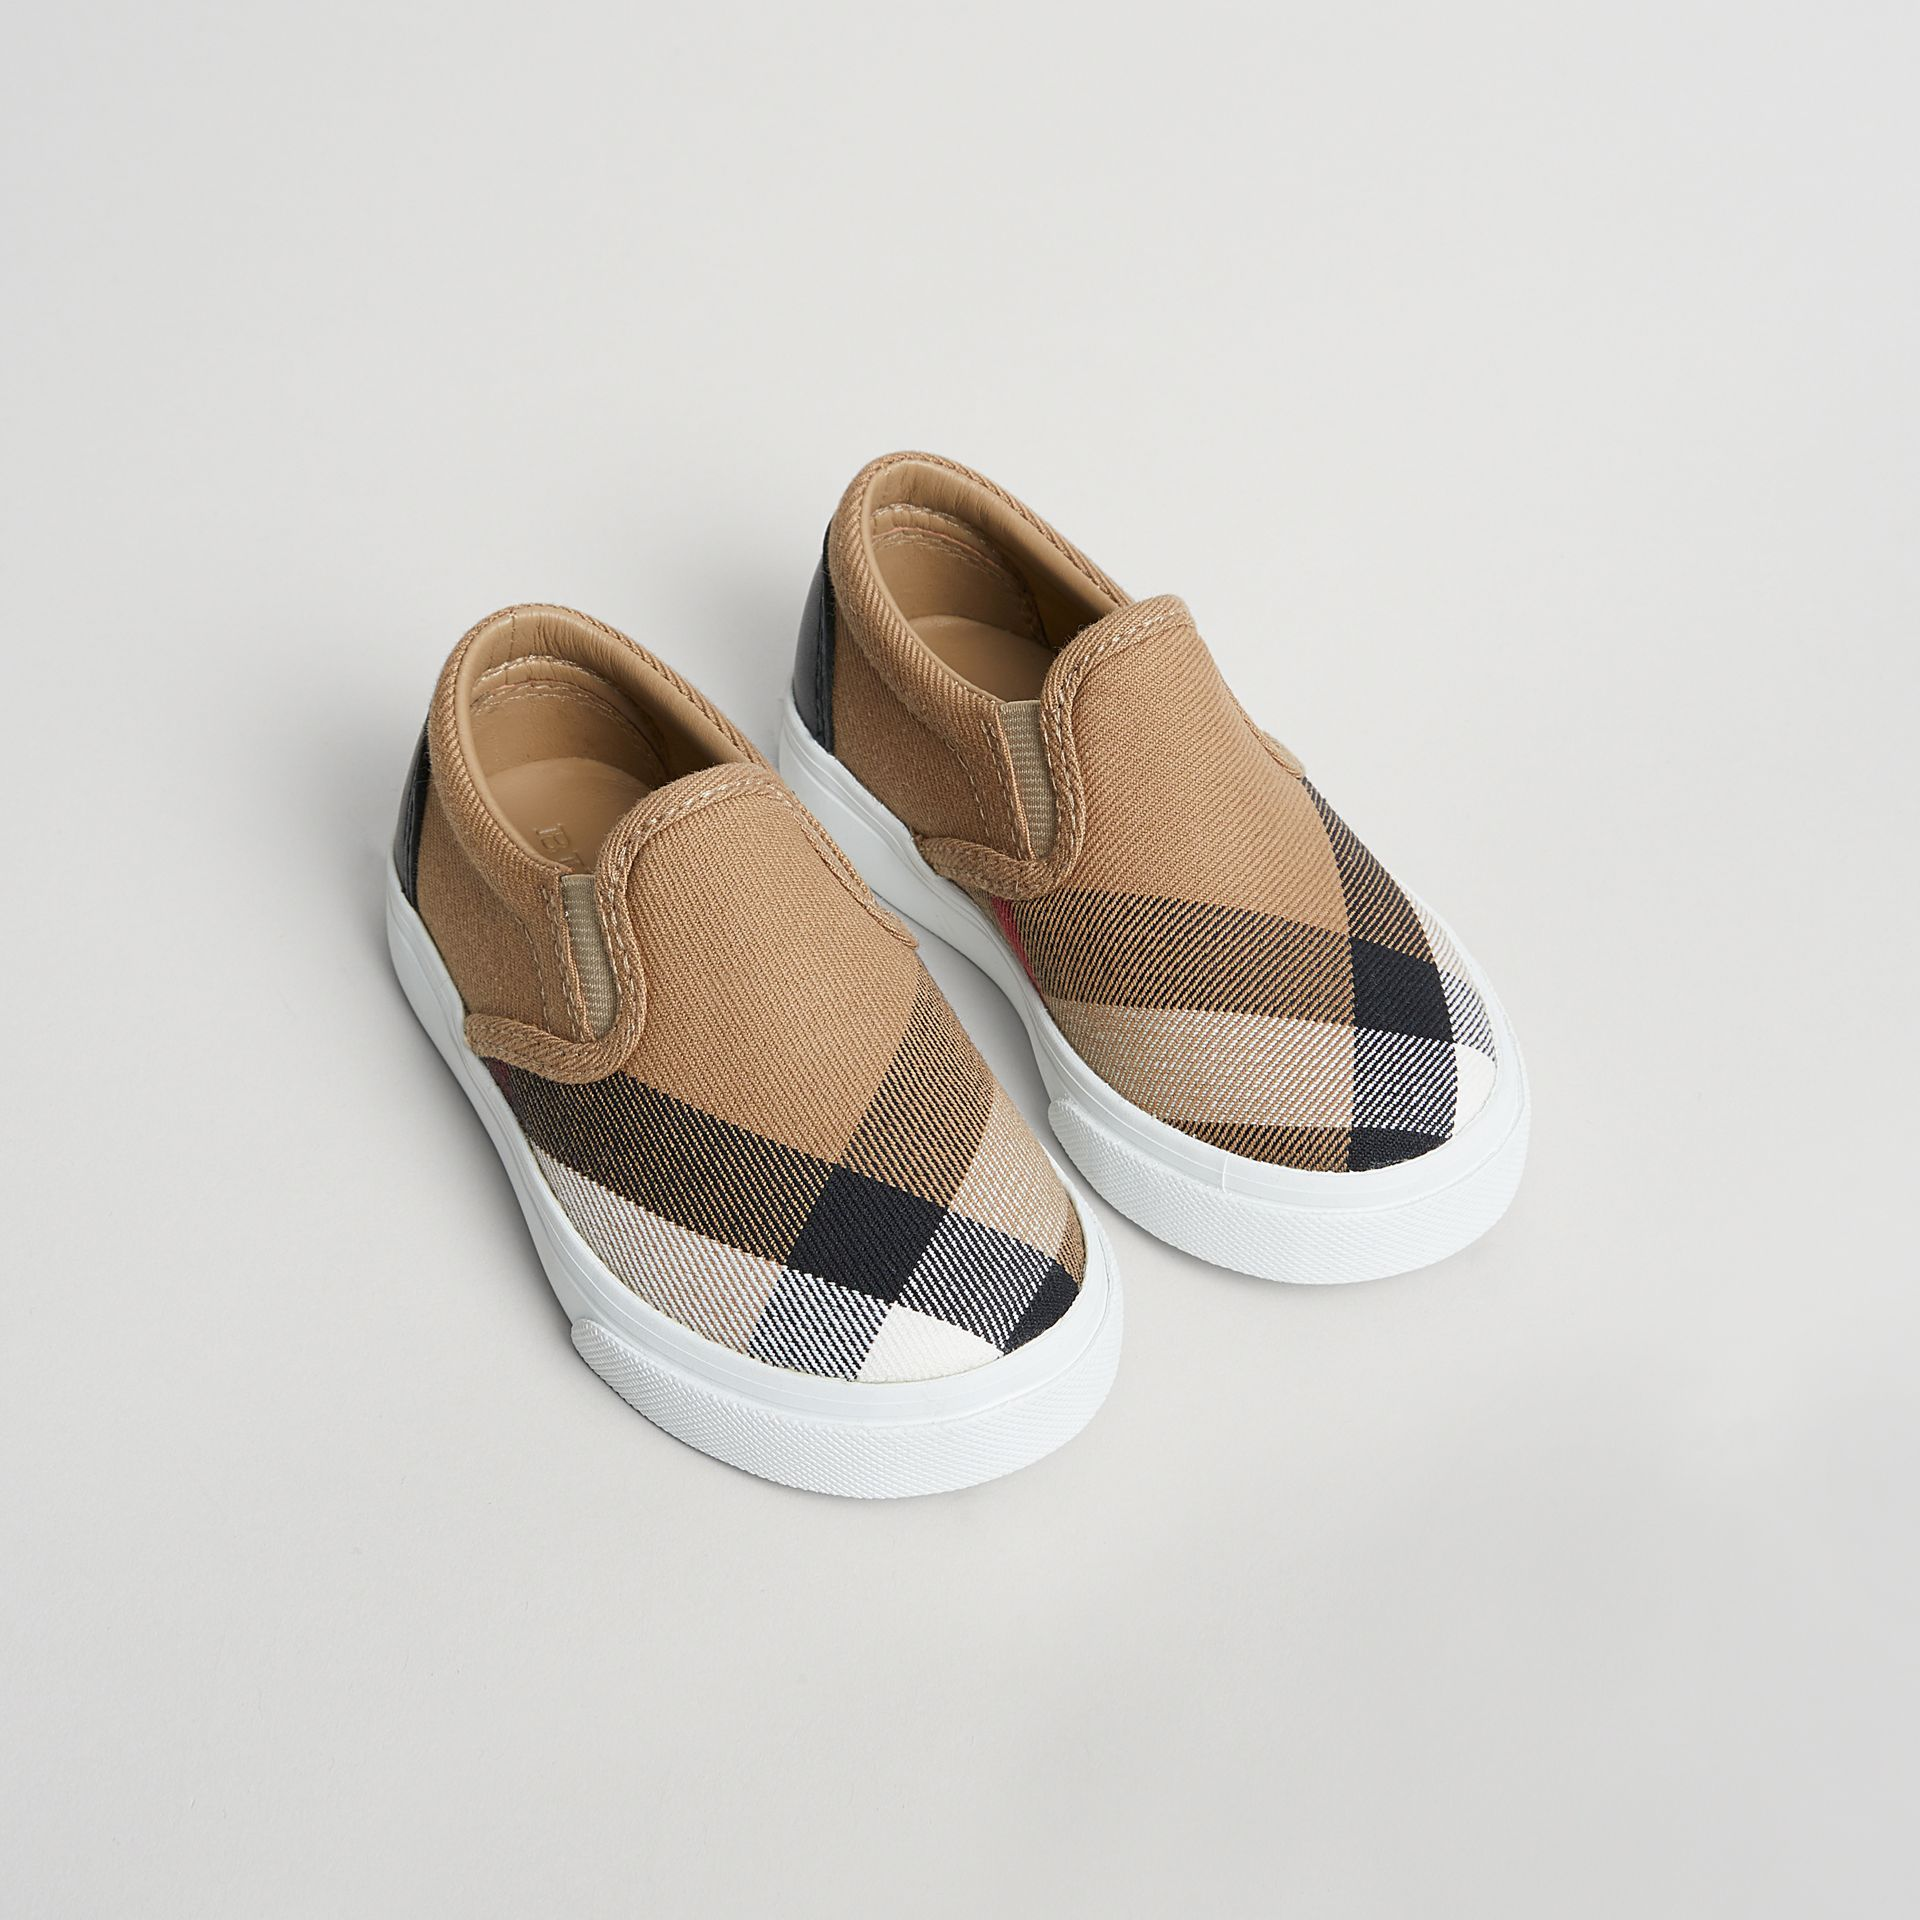 House Check and Leather Slip-on Sneakers in Classic/optic White | Burberry - gallery image 0